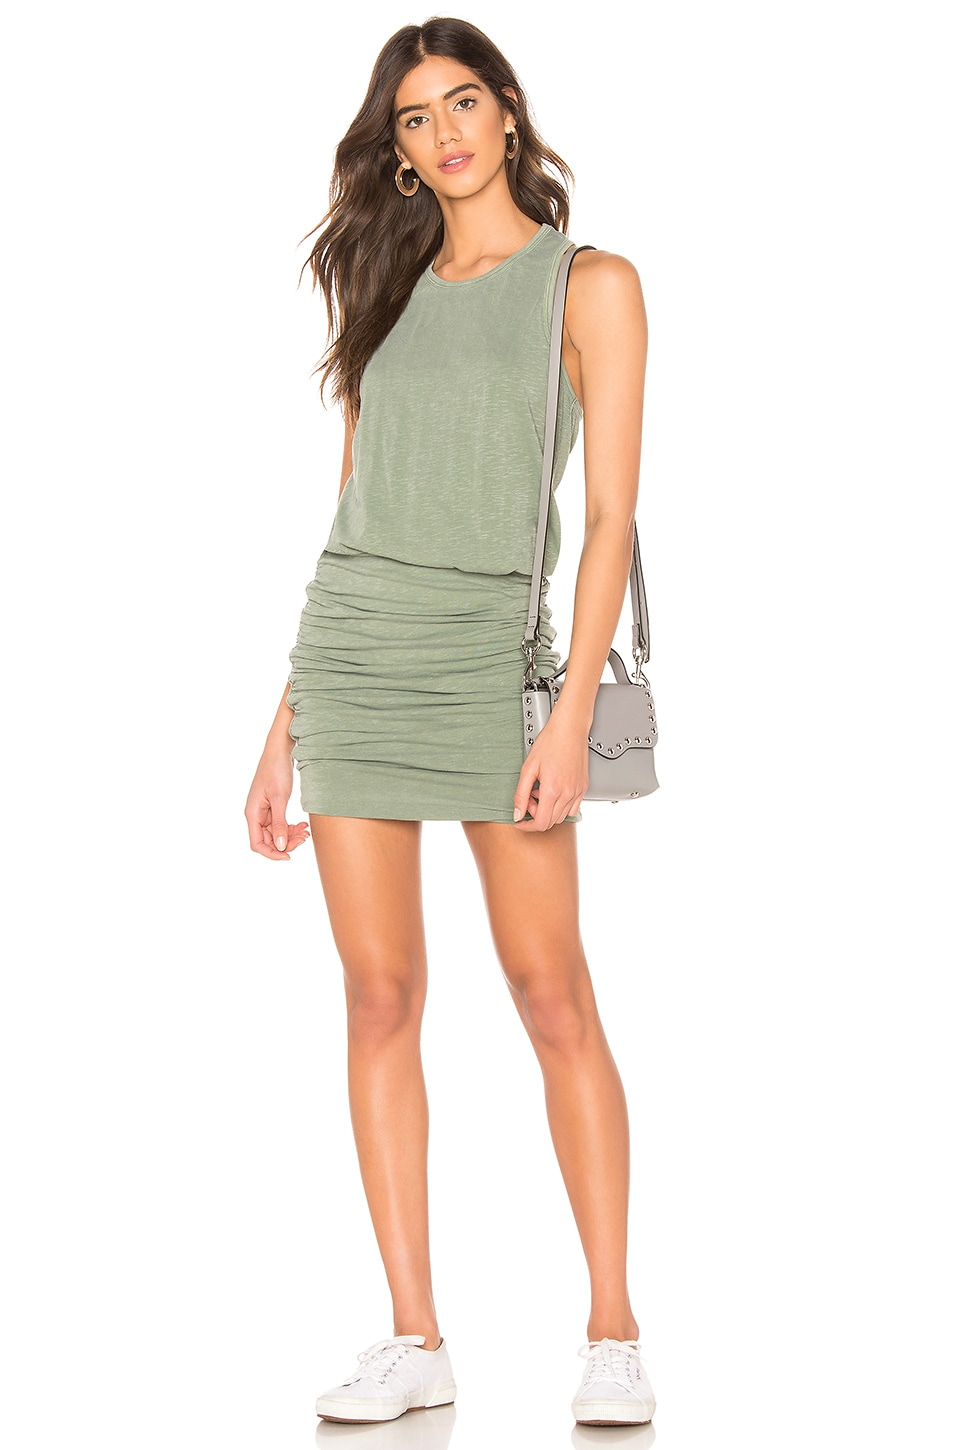 SUNDRY Tank Dress in Pigment Loden